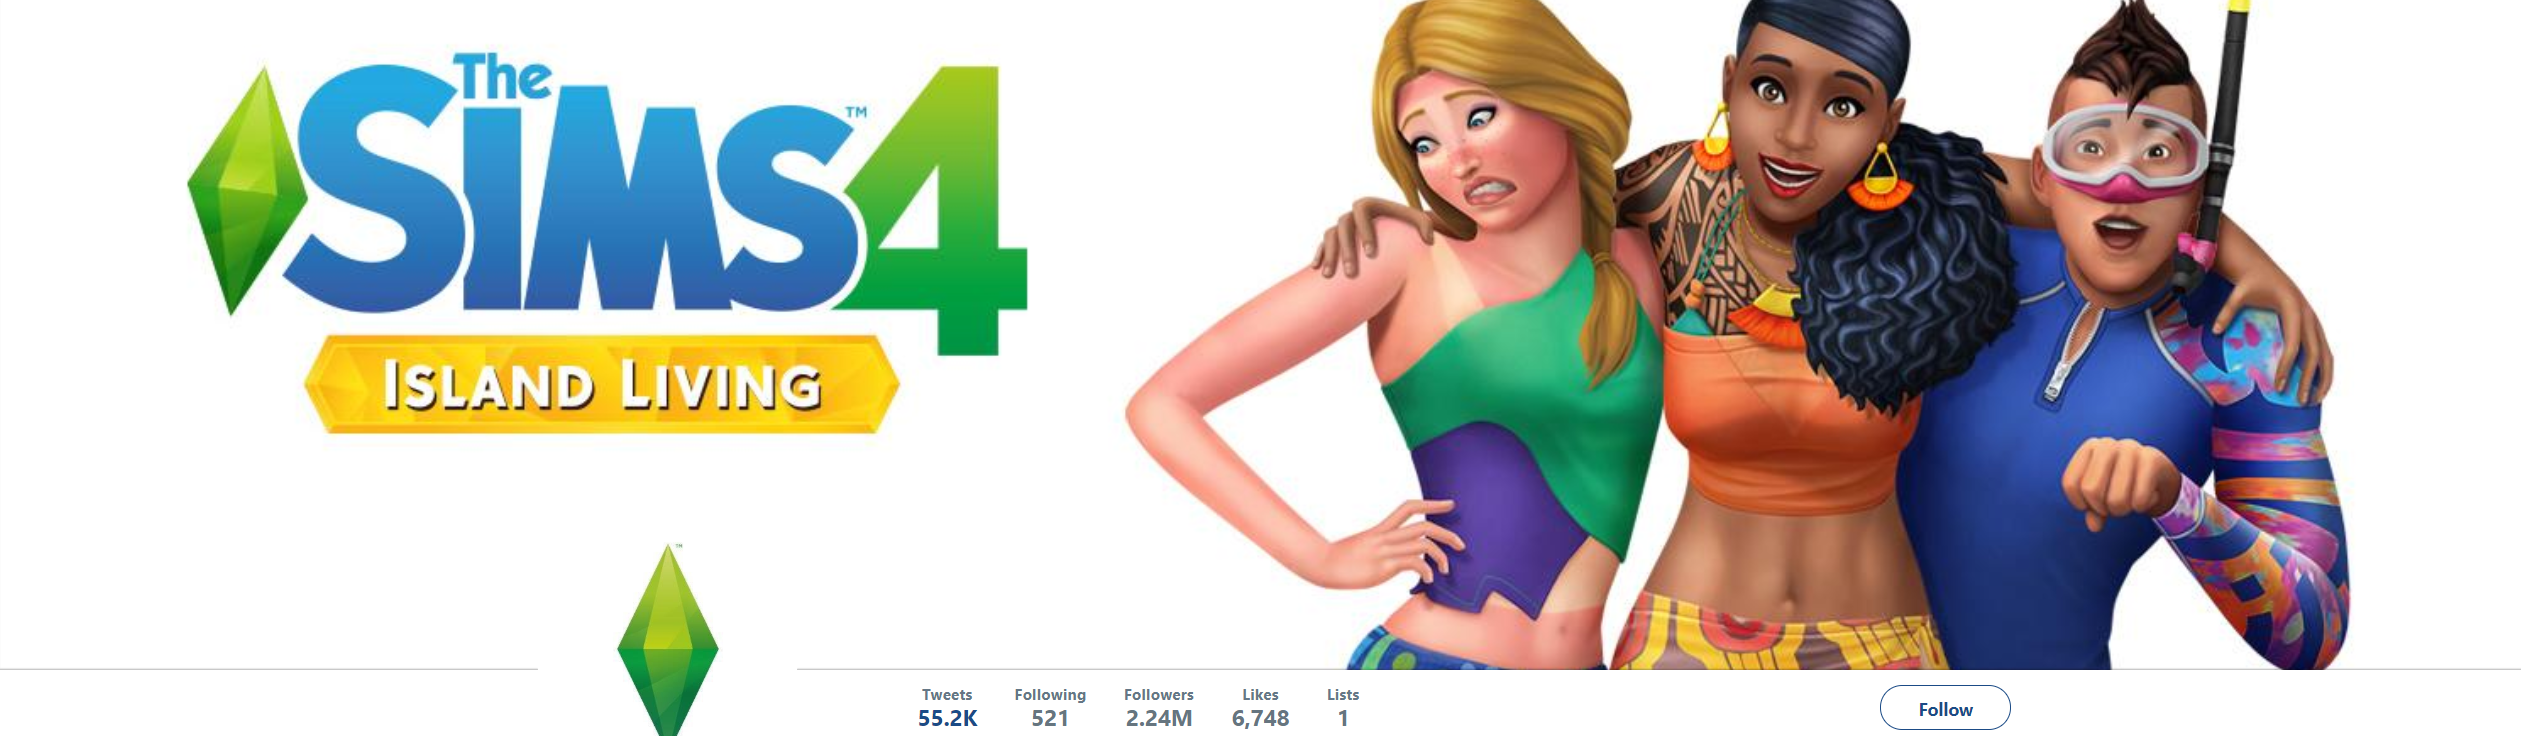 The Sims 4 Twitter Marketing